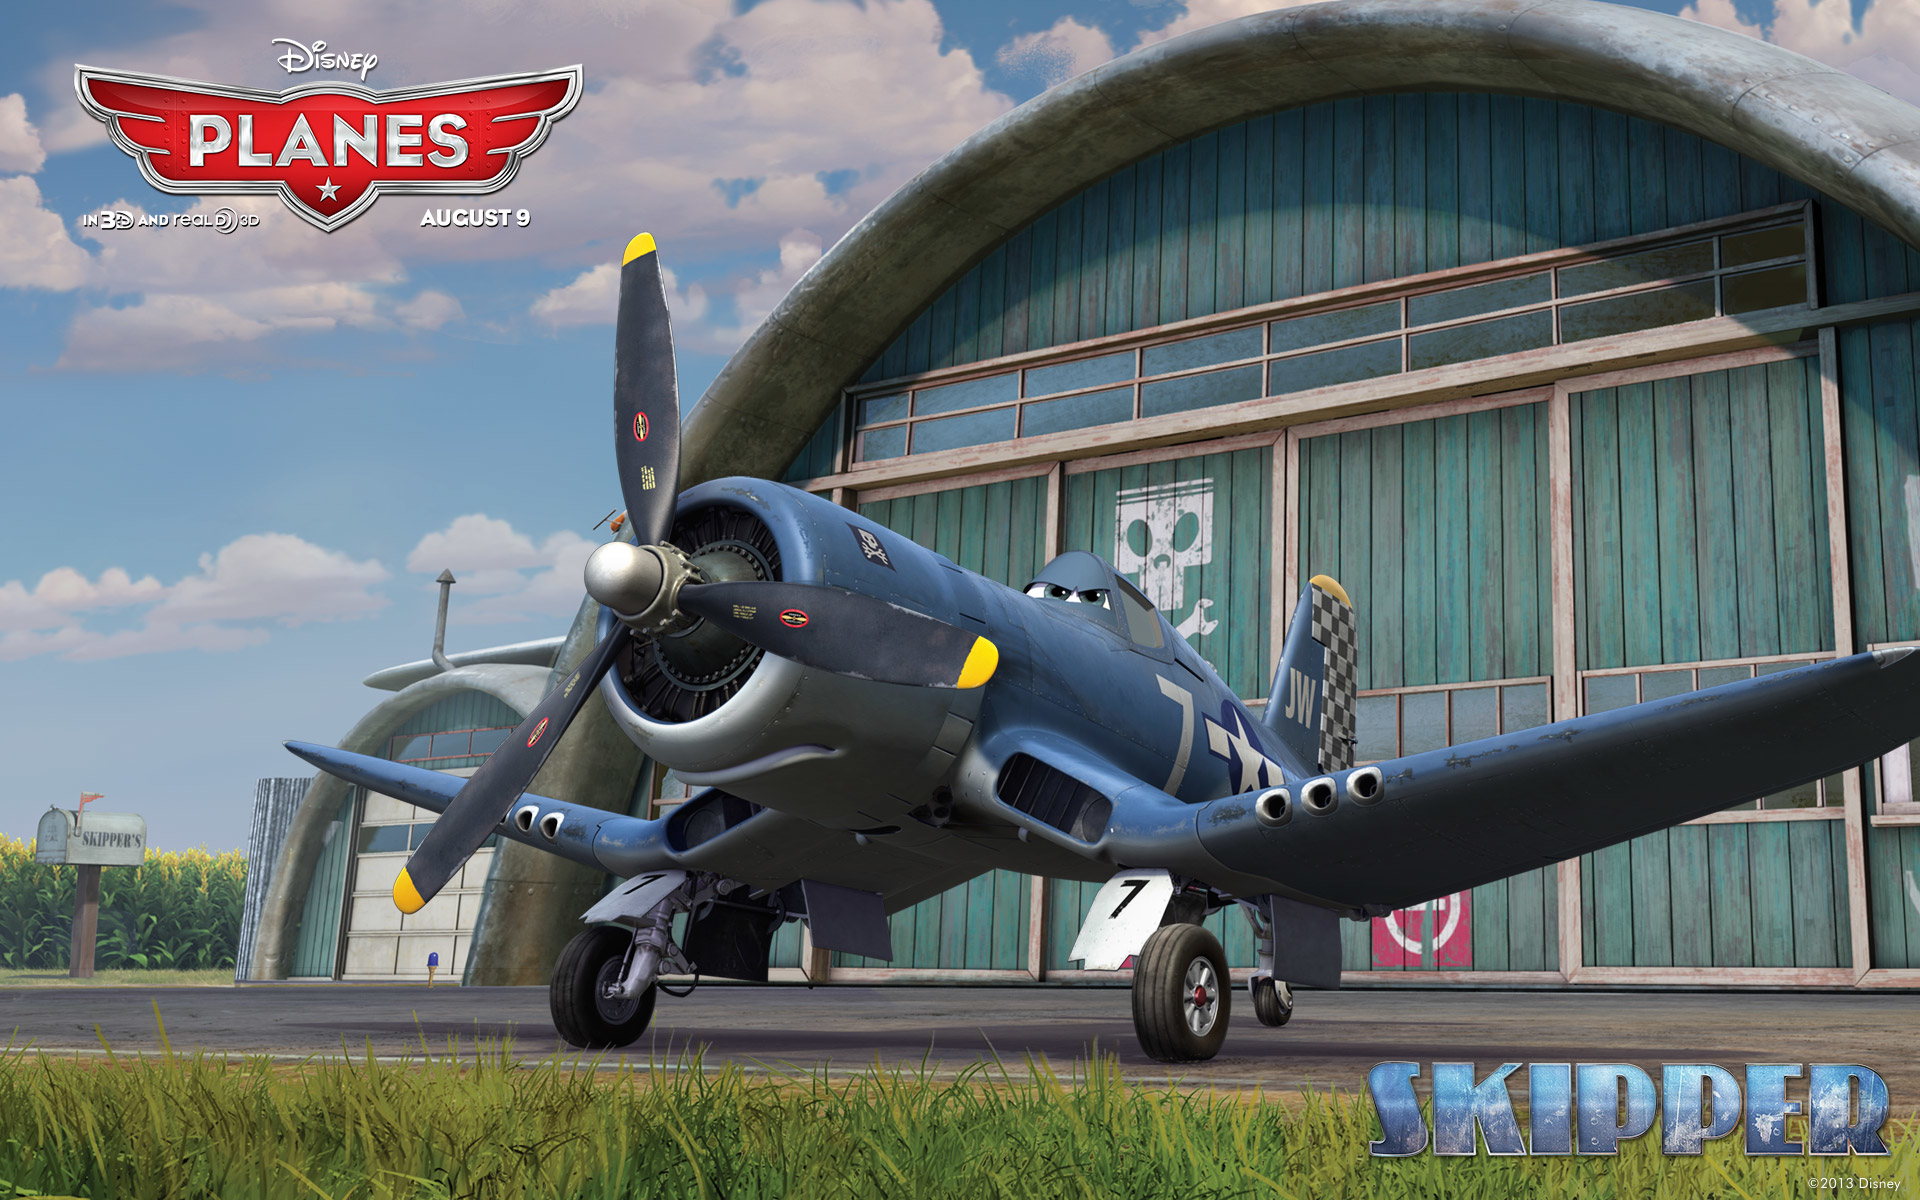 Planes And Cars Wallpaper Fondos De Pantalla De Aviones Disney Pixar Wallpapers